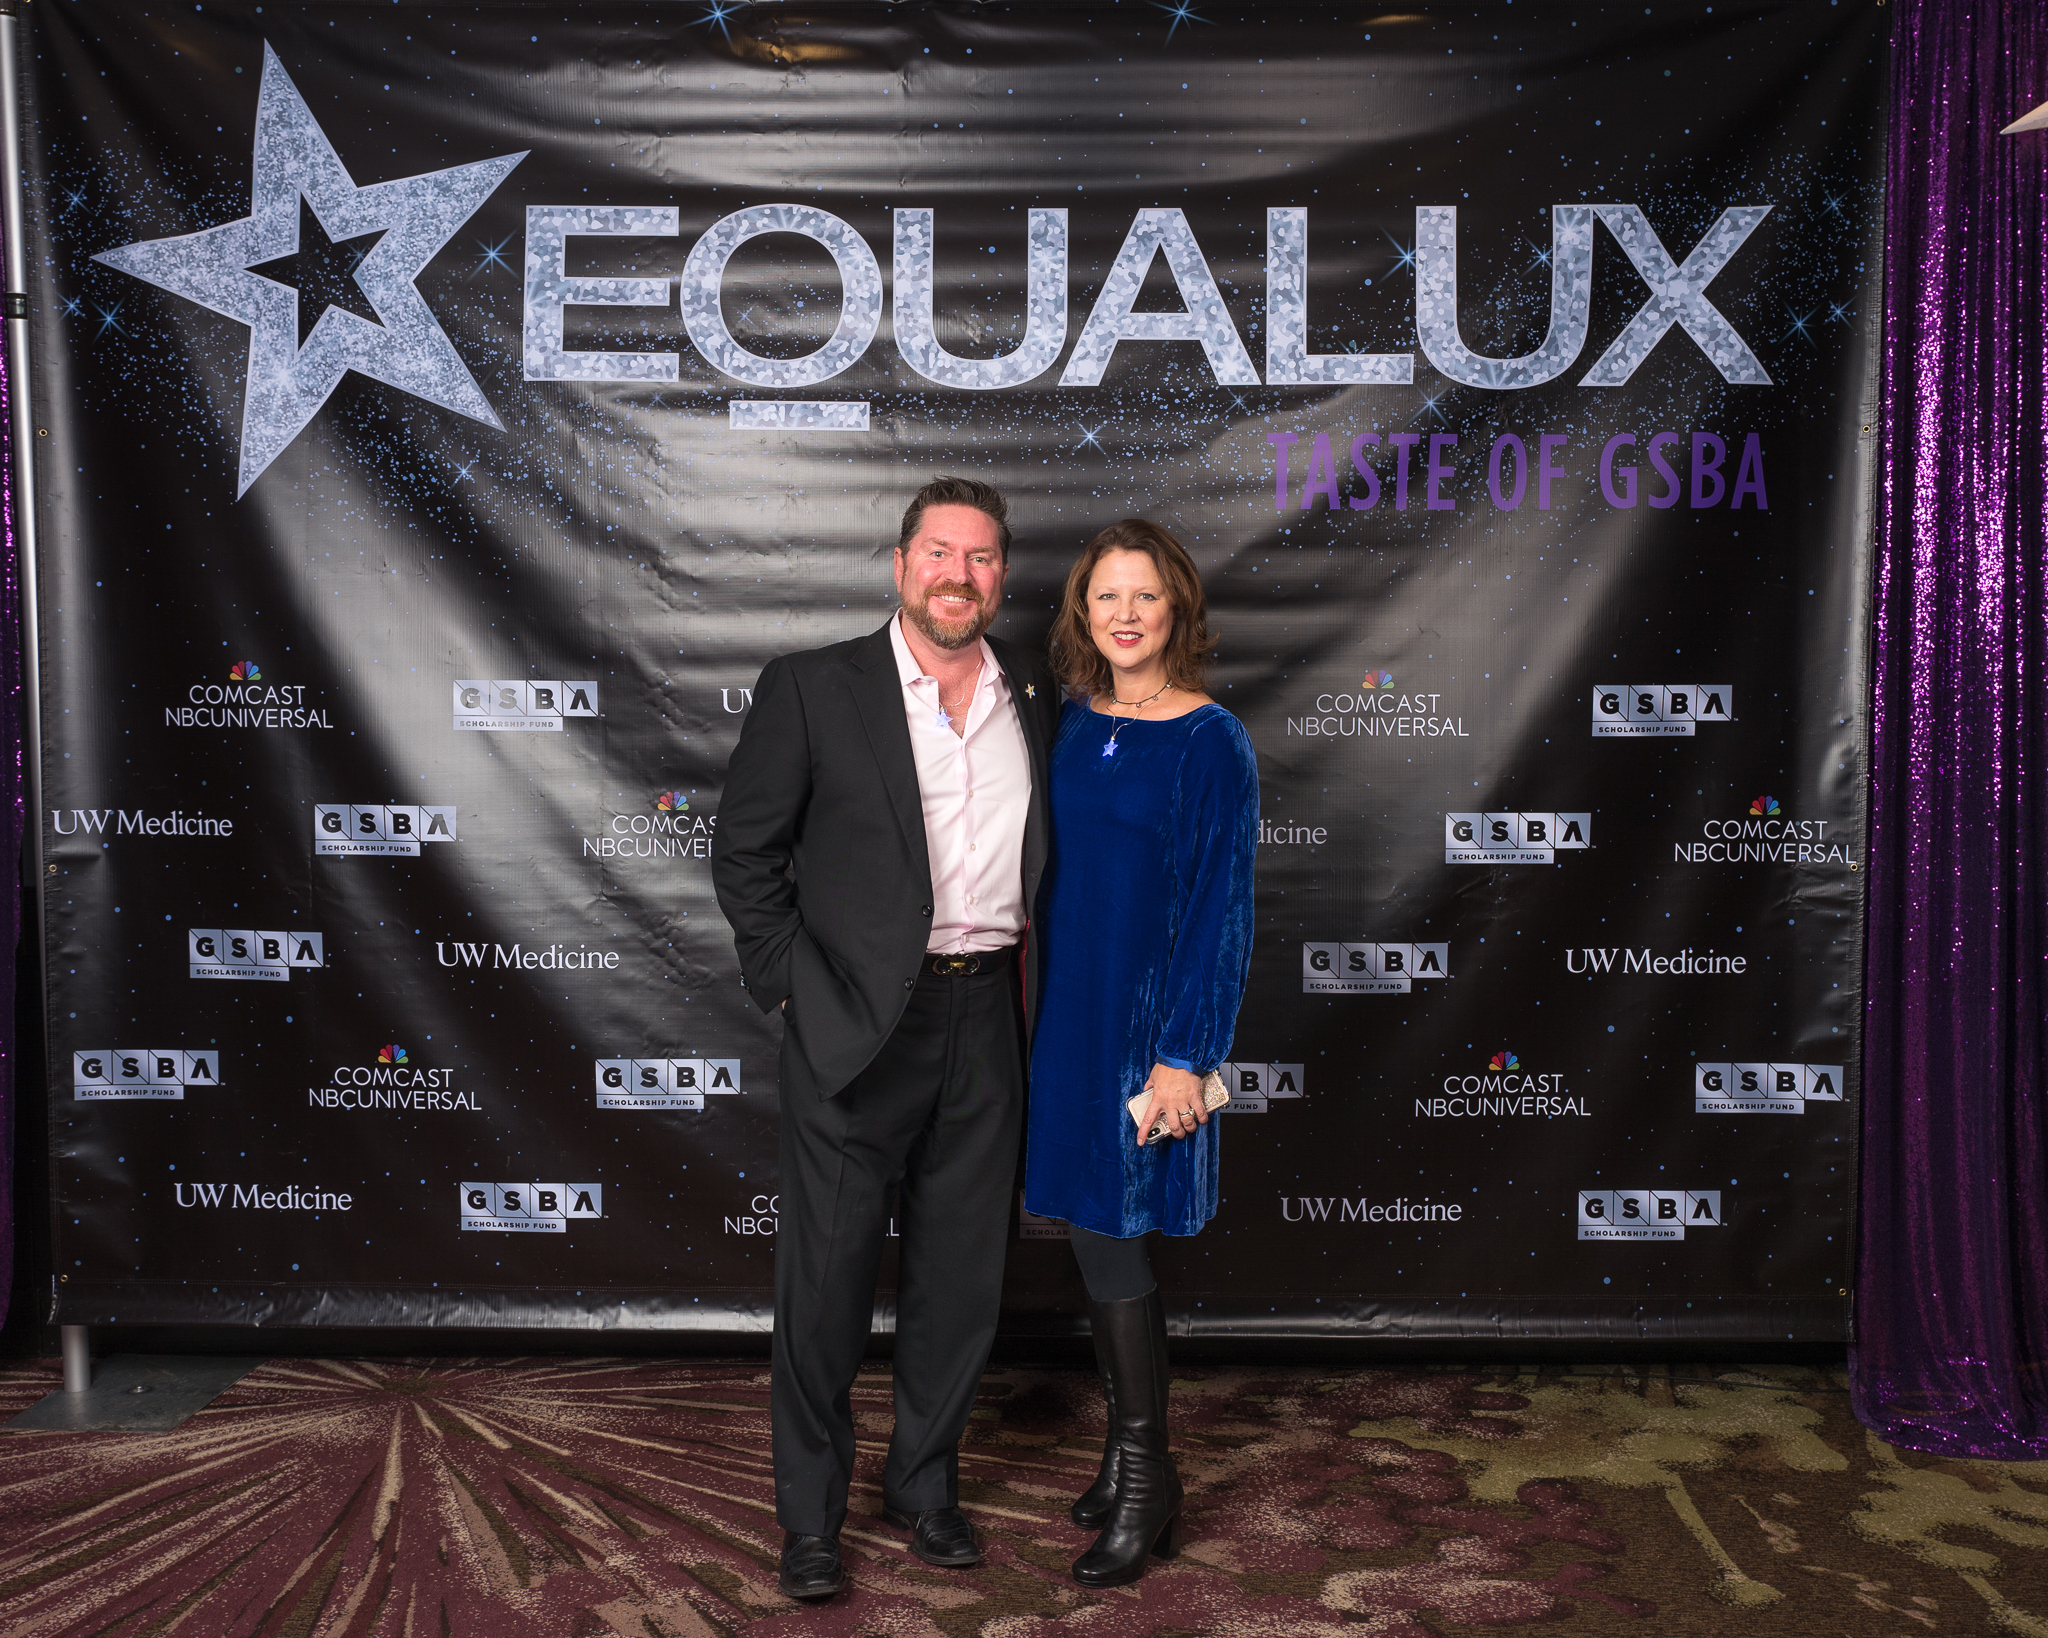 111718_GSBA EQUALUX at The Westin Seattle (Credit- Nate Gowdy)-181.jpg